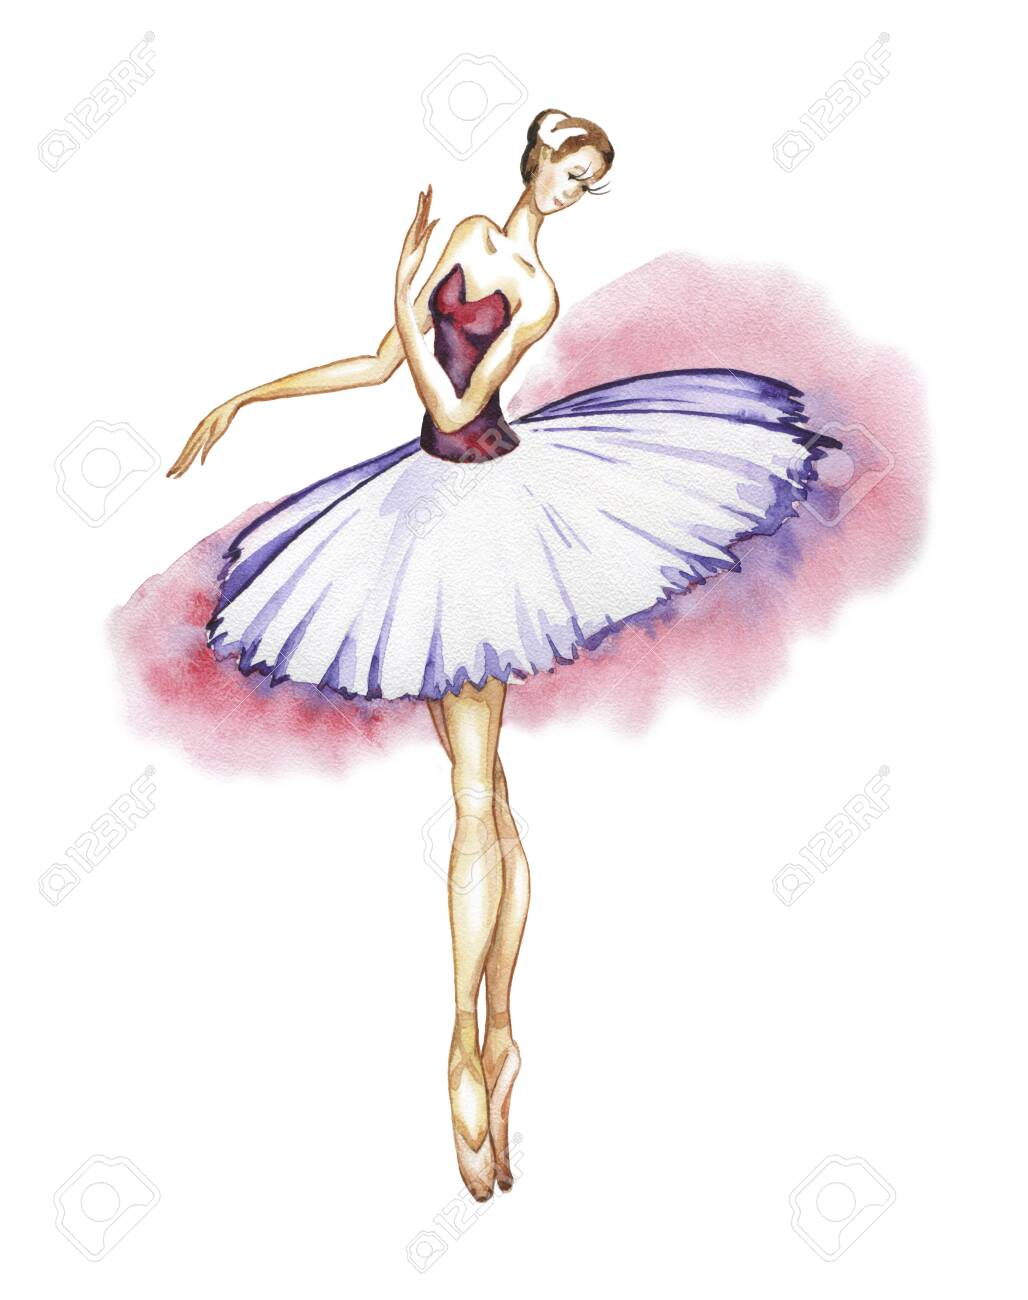 Classical ballerina in a tutu and pointe shoes. Watercolor drawing on a white background - 142898964